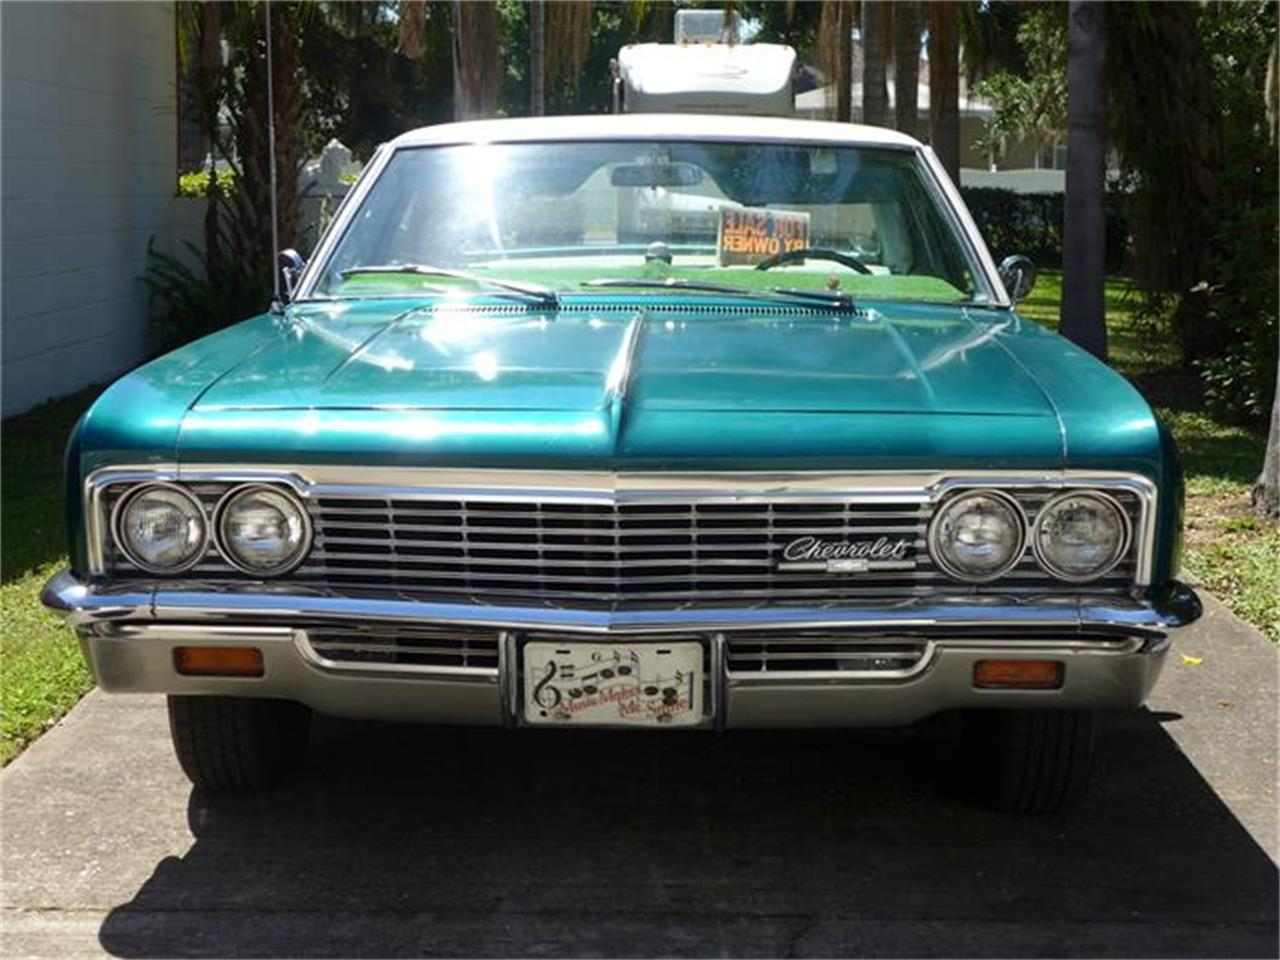 Large Picture of Classic '66 Impala Offered by a Private Seller - B878